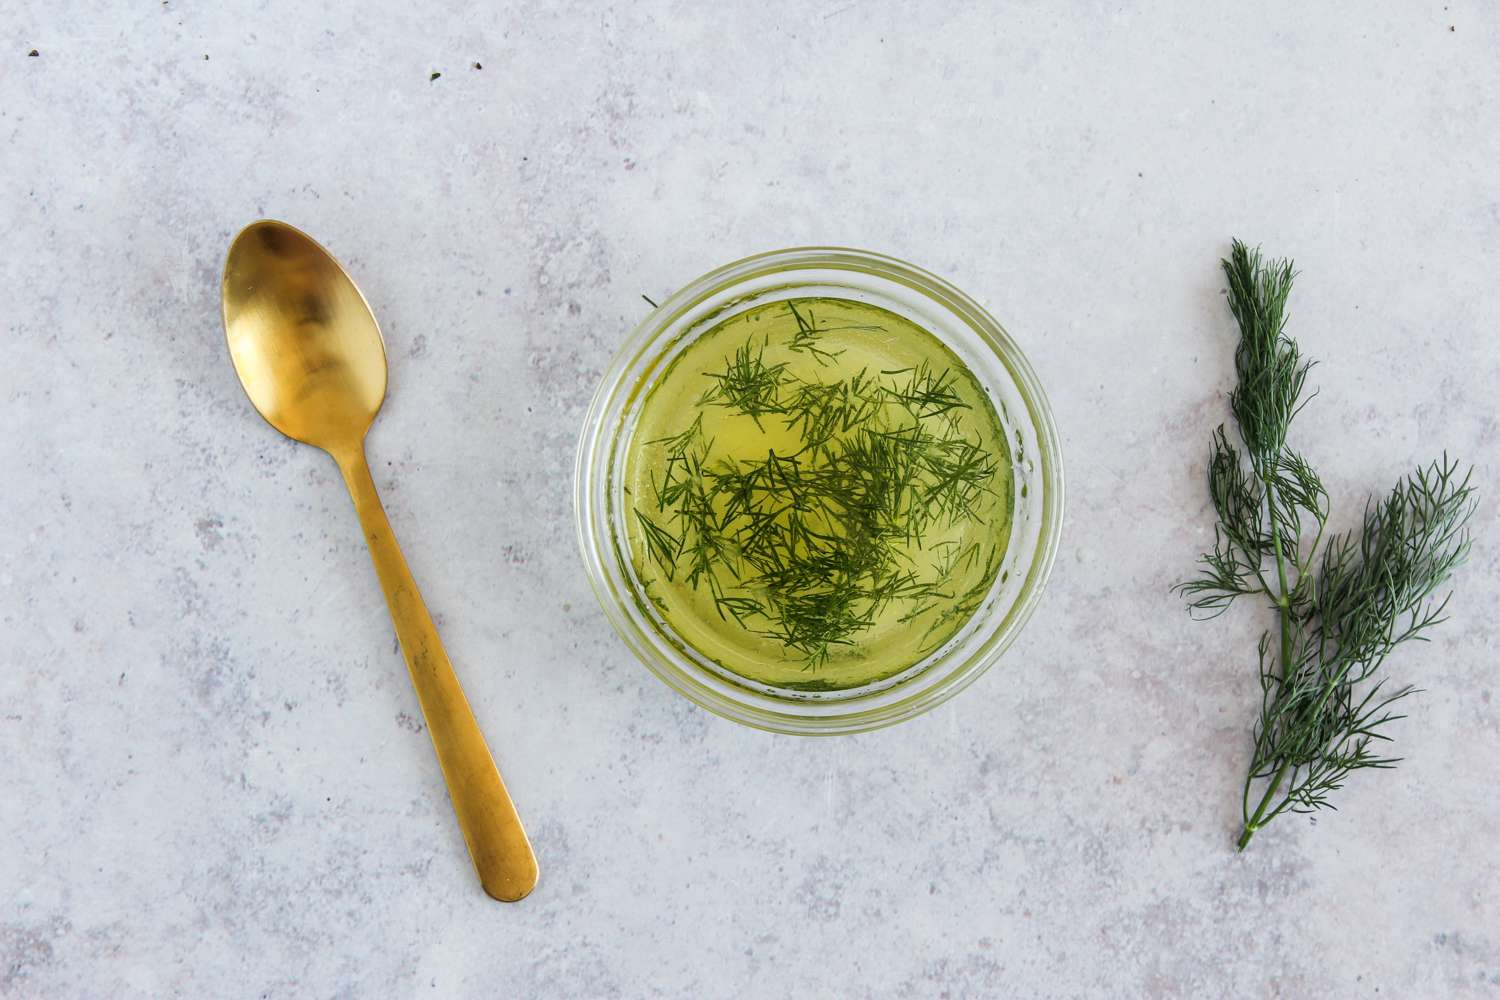 Combine olive oil and dill